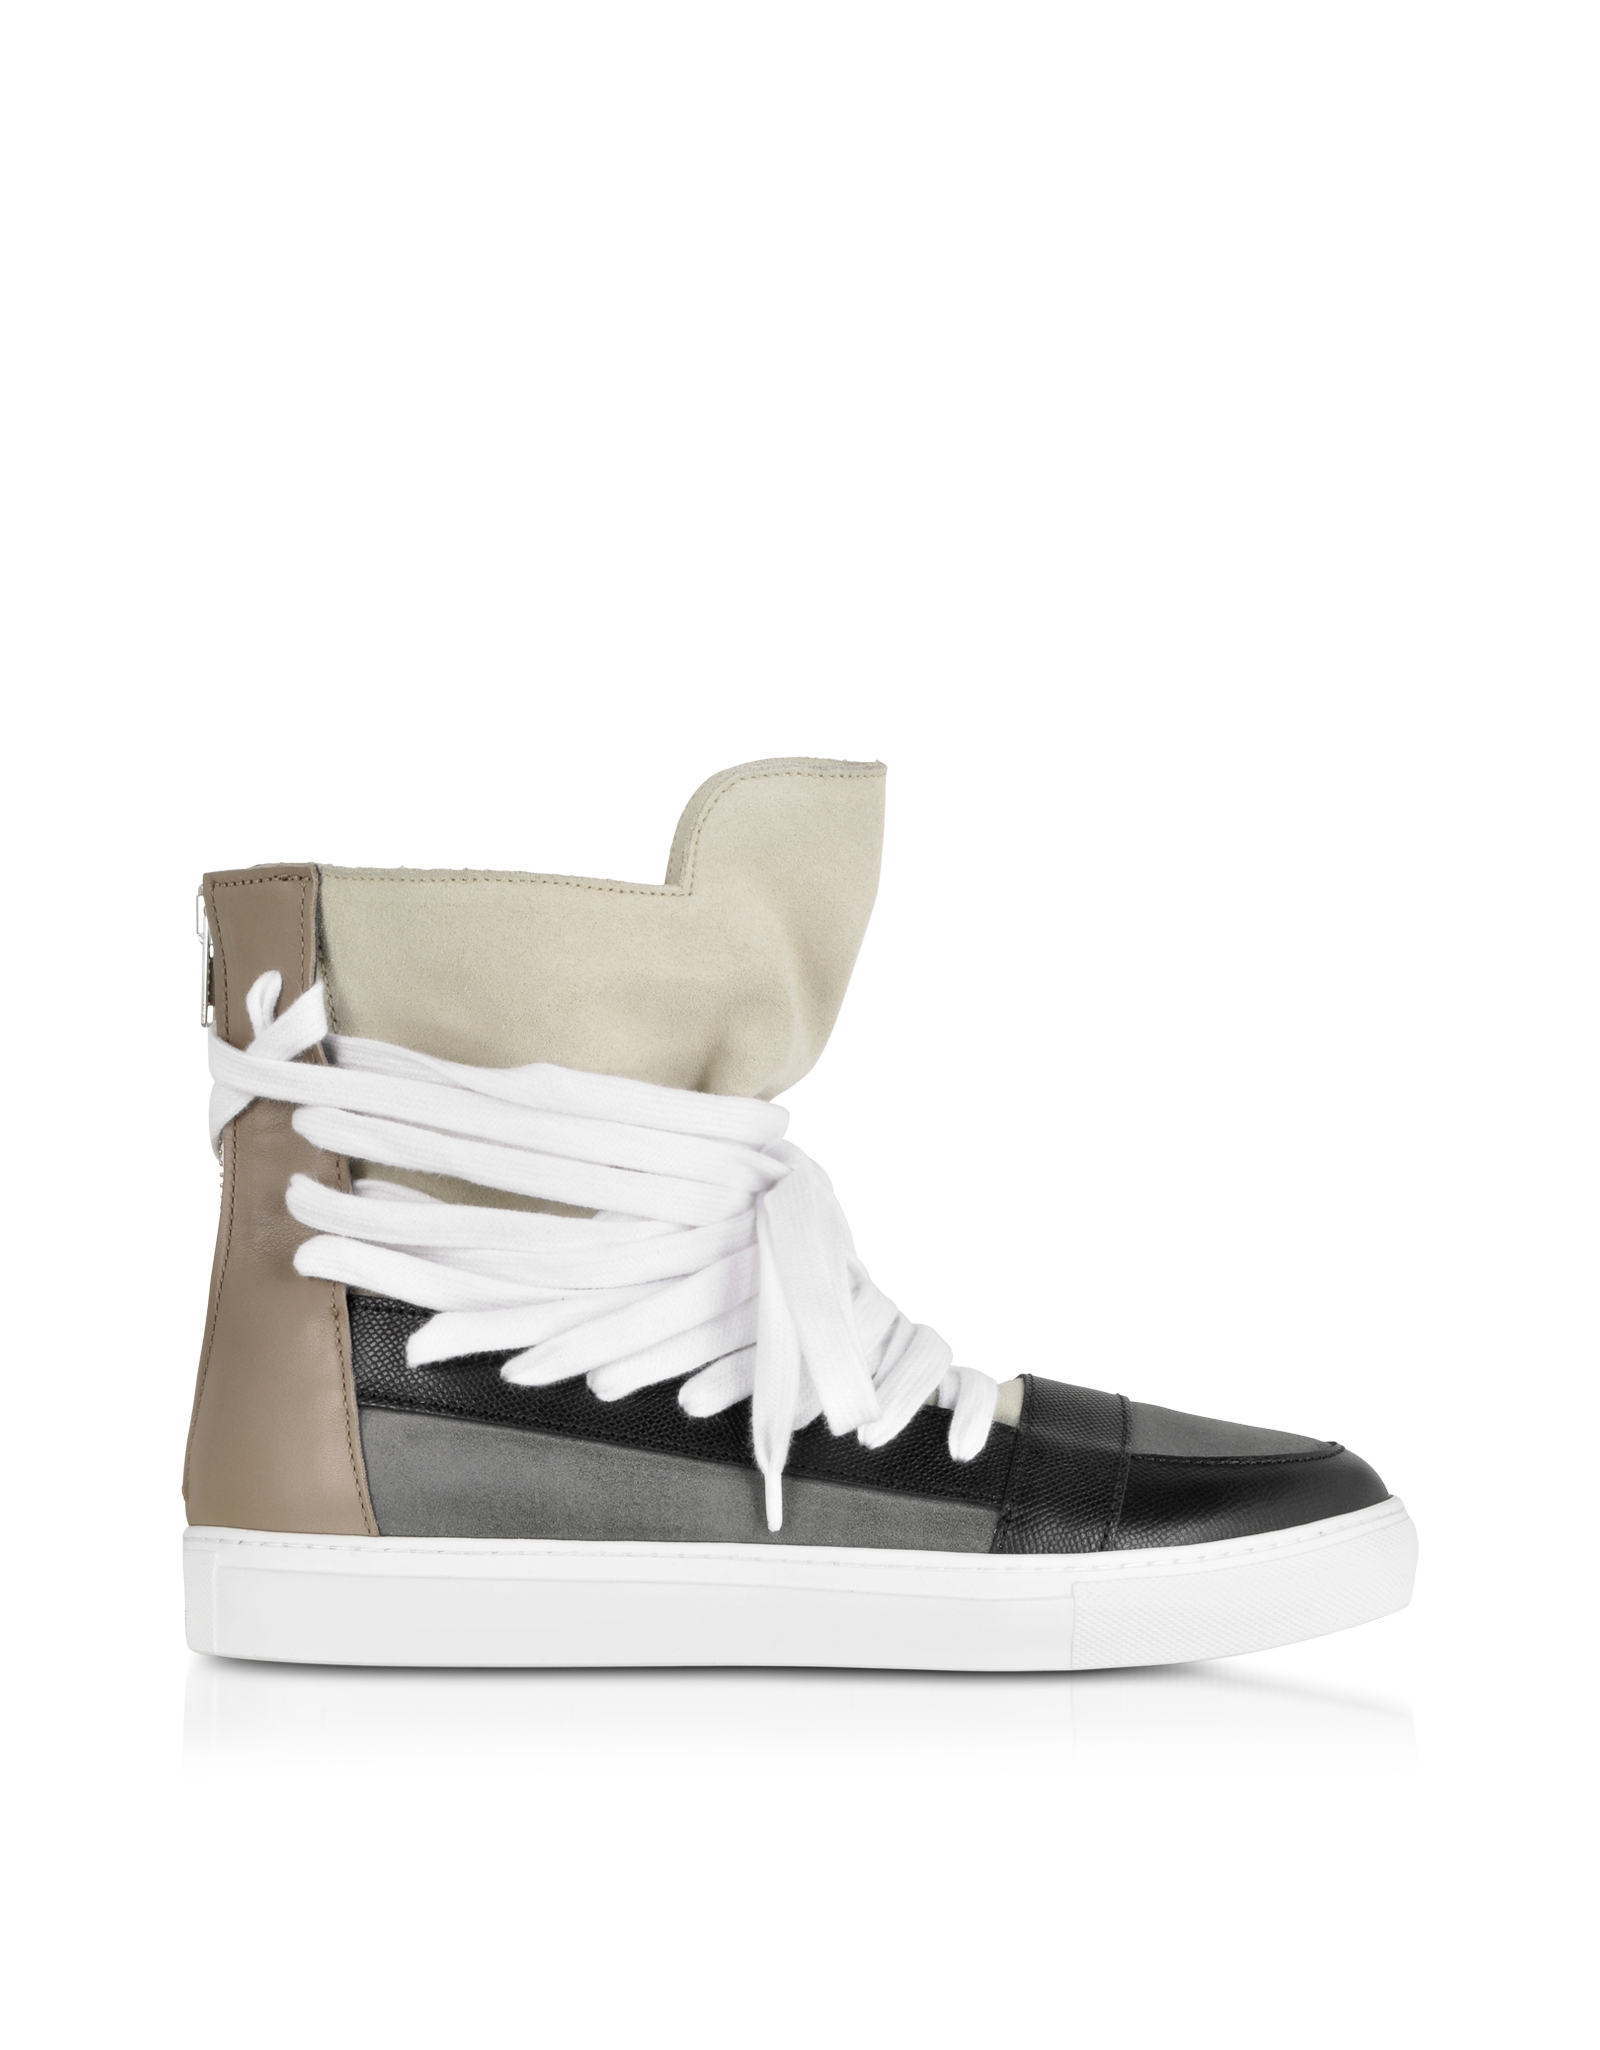 dd517a9dfc Lyst - Kris Van Assche Multi Brown Multilaces High Top Sneaker in ...